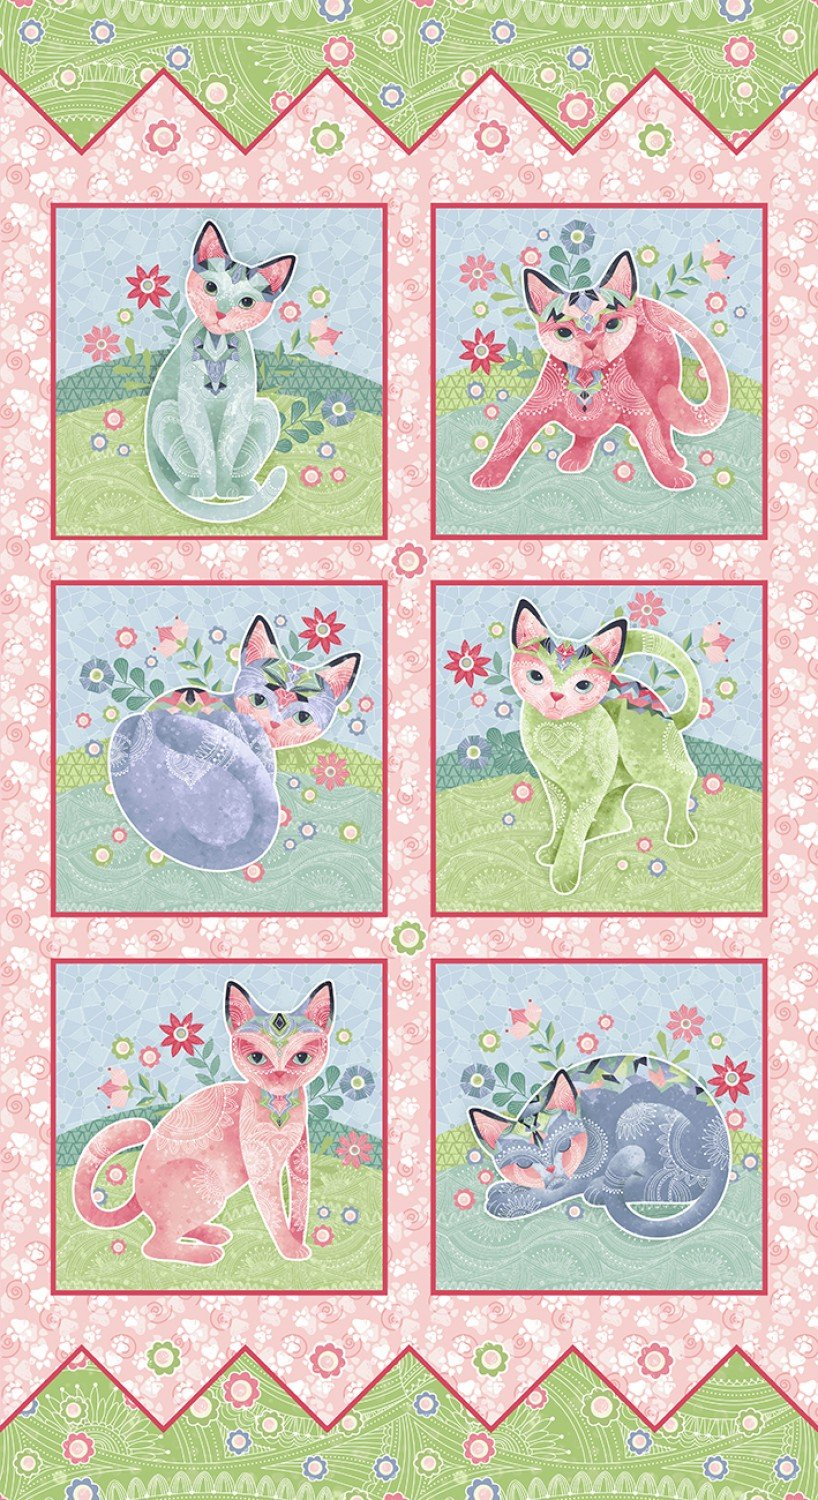 SE-Fancy Cats 5300P-26 Multi - Fancy Cats Panel 24 x 44